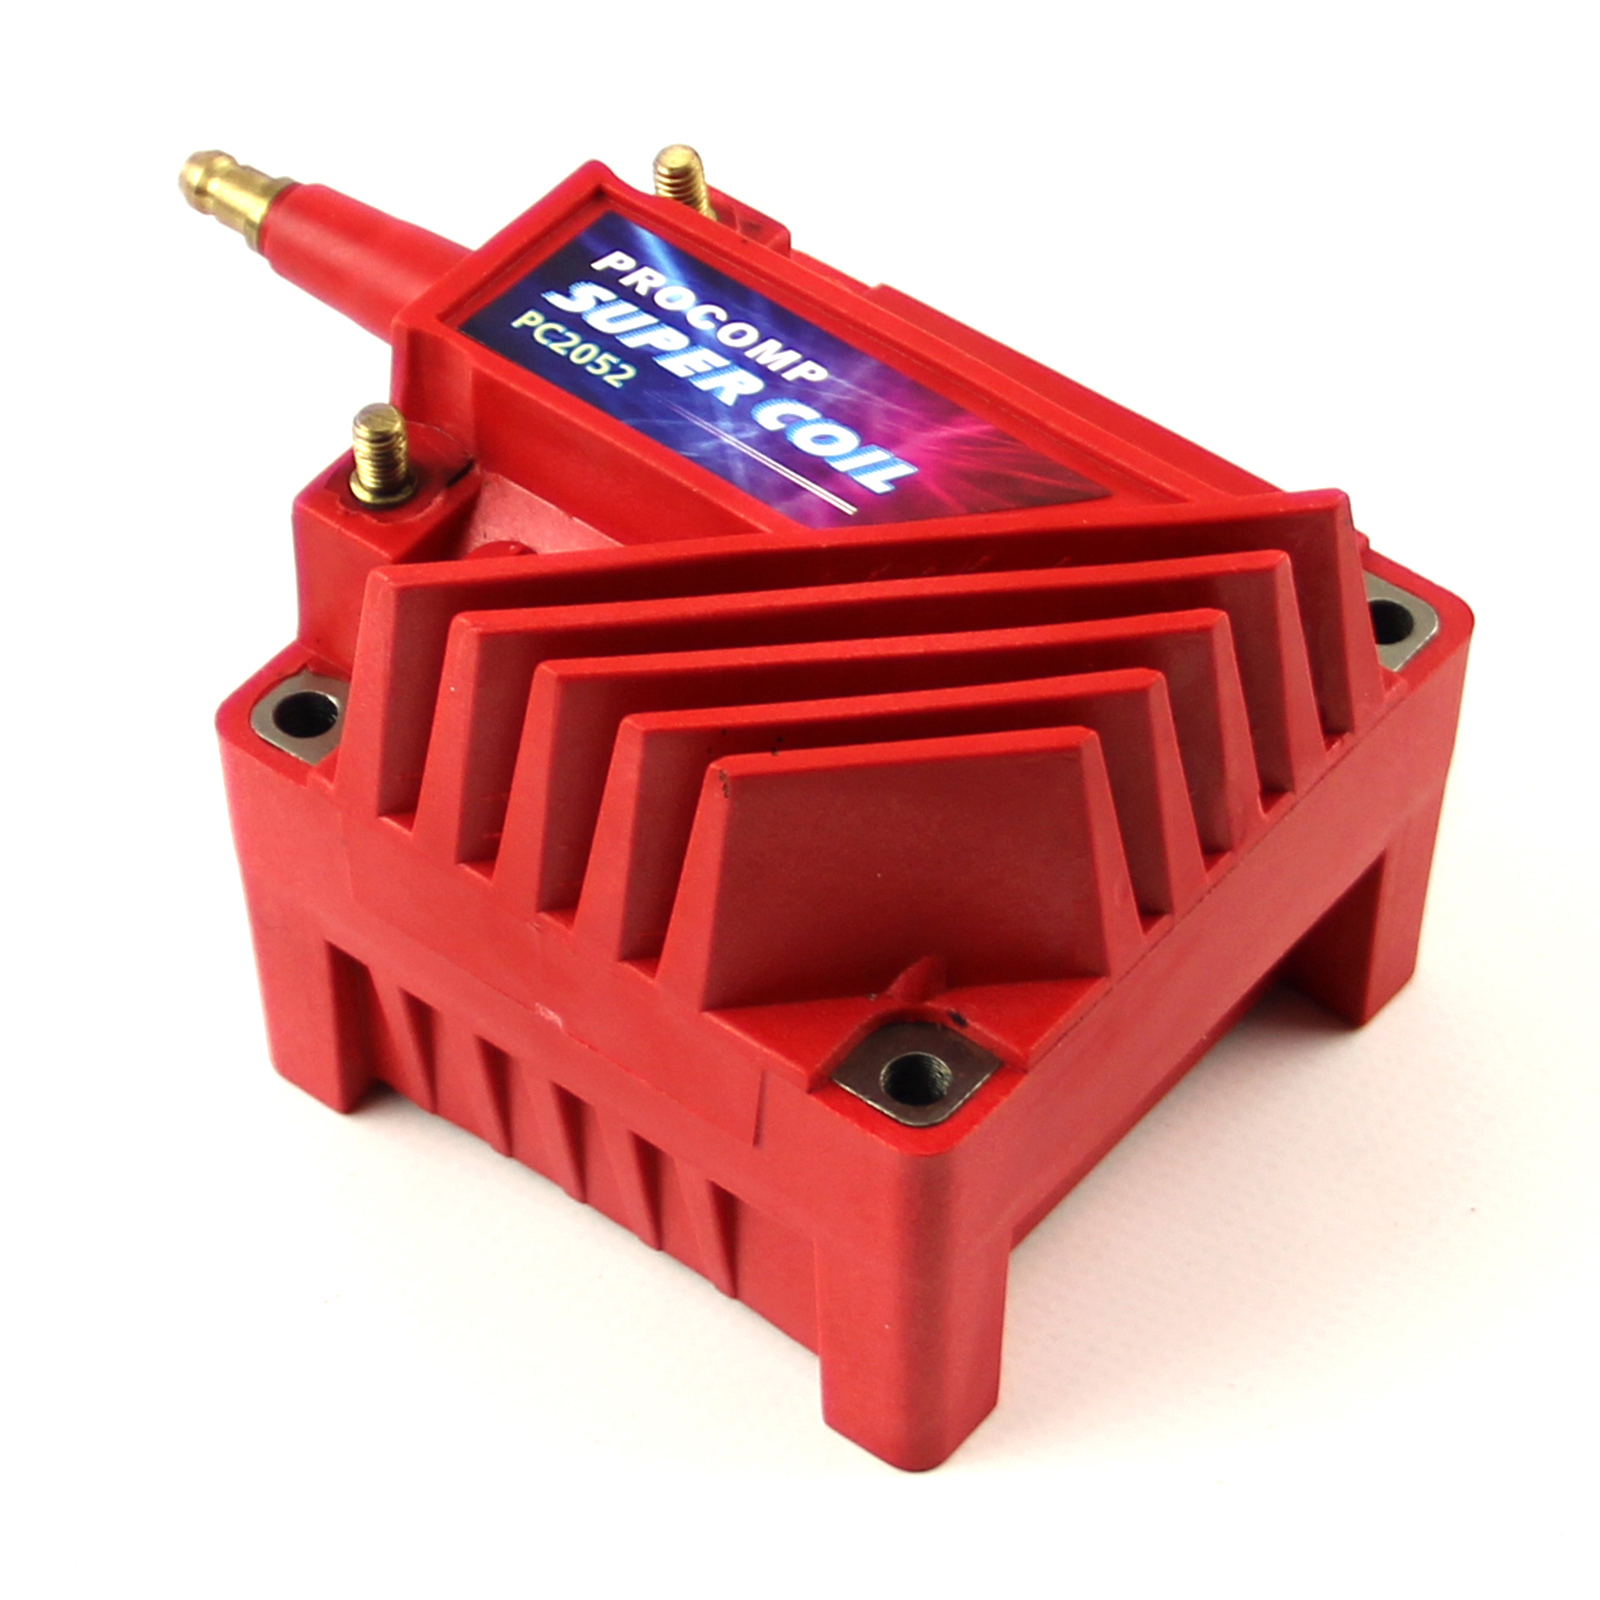 Universal Pc92 12V High Output External Male E-Core Ignition Coil - Red